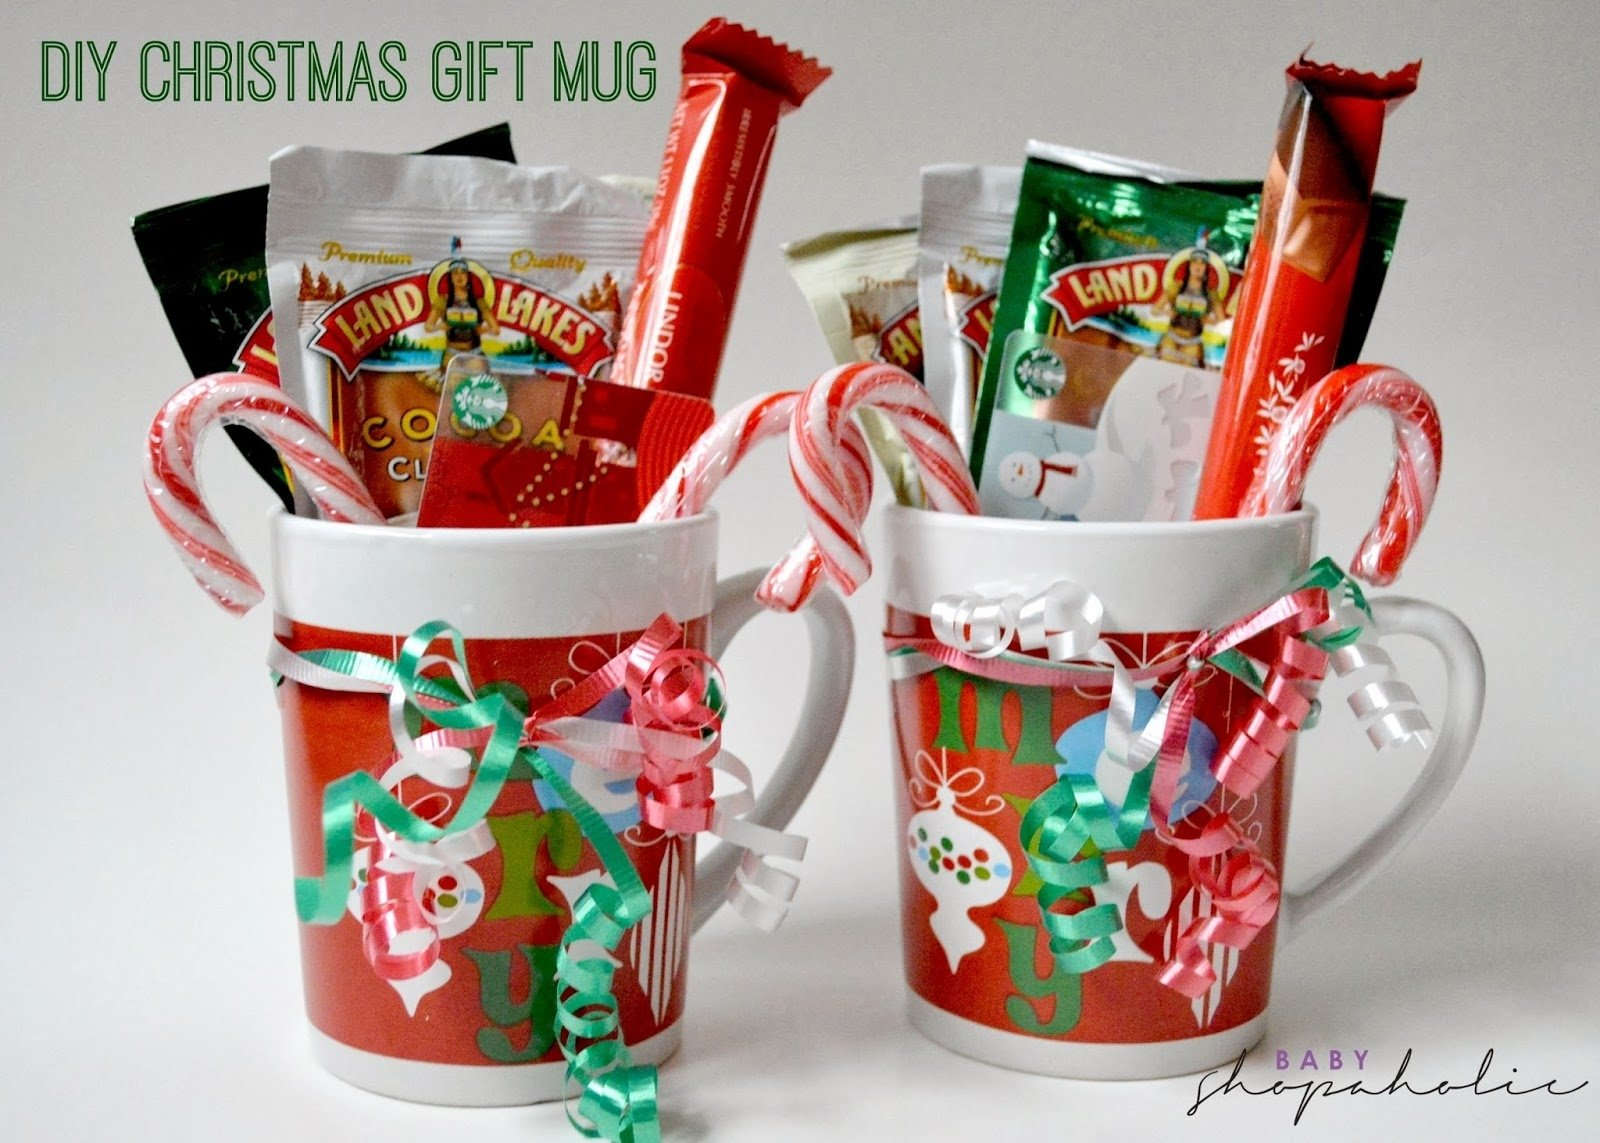 10 Fantastic Inexpensive Gift Ideas For Coworkers inexpensive christmas gift ideas teachers christmas design 2020